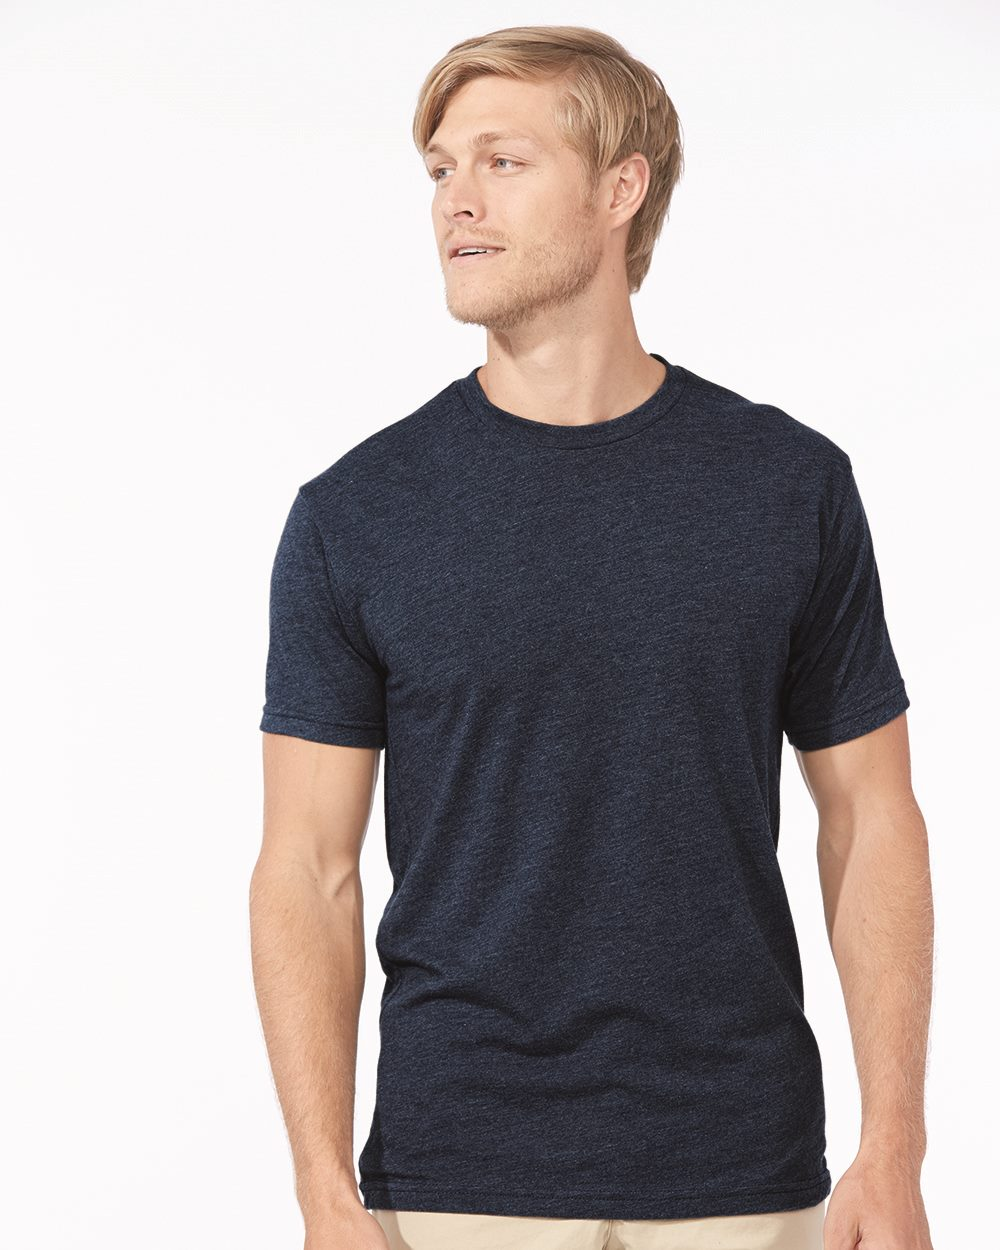 Next Level Triblend Short Sleeve - 6010                          Starting at $6.00 Blank